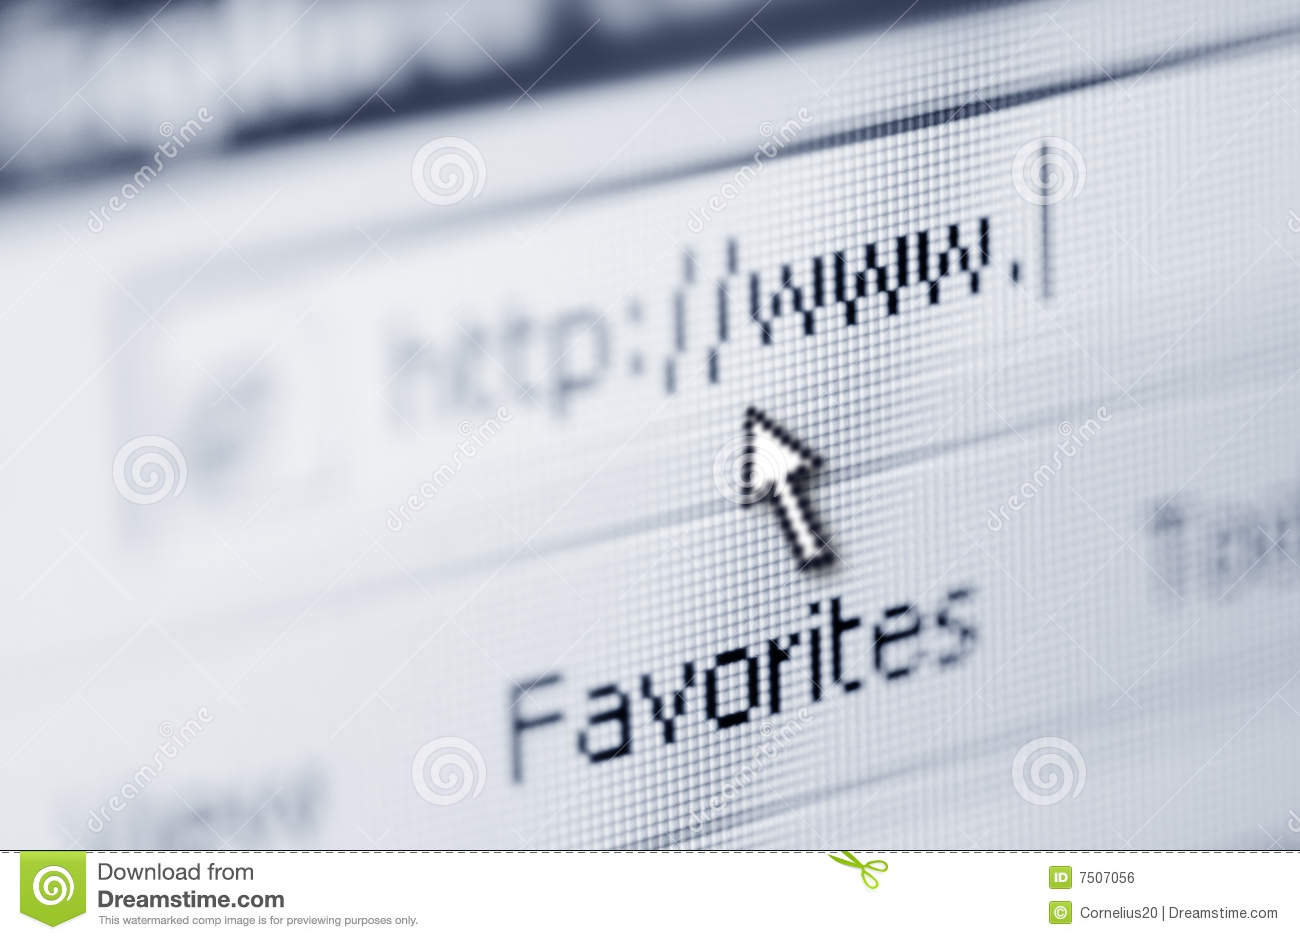 Browse the internet